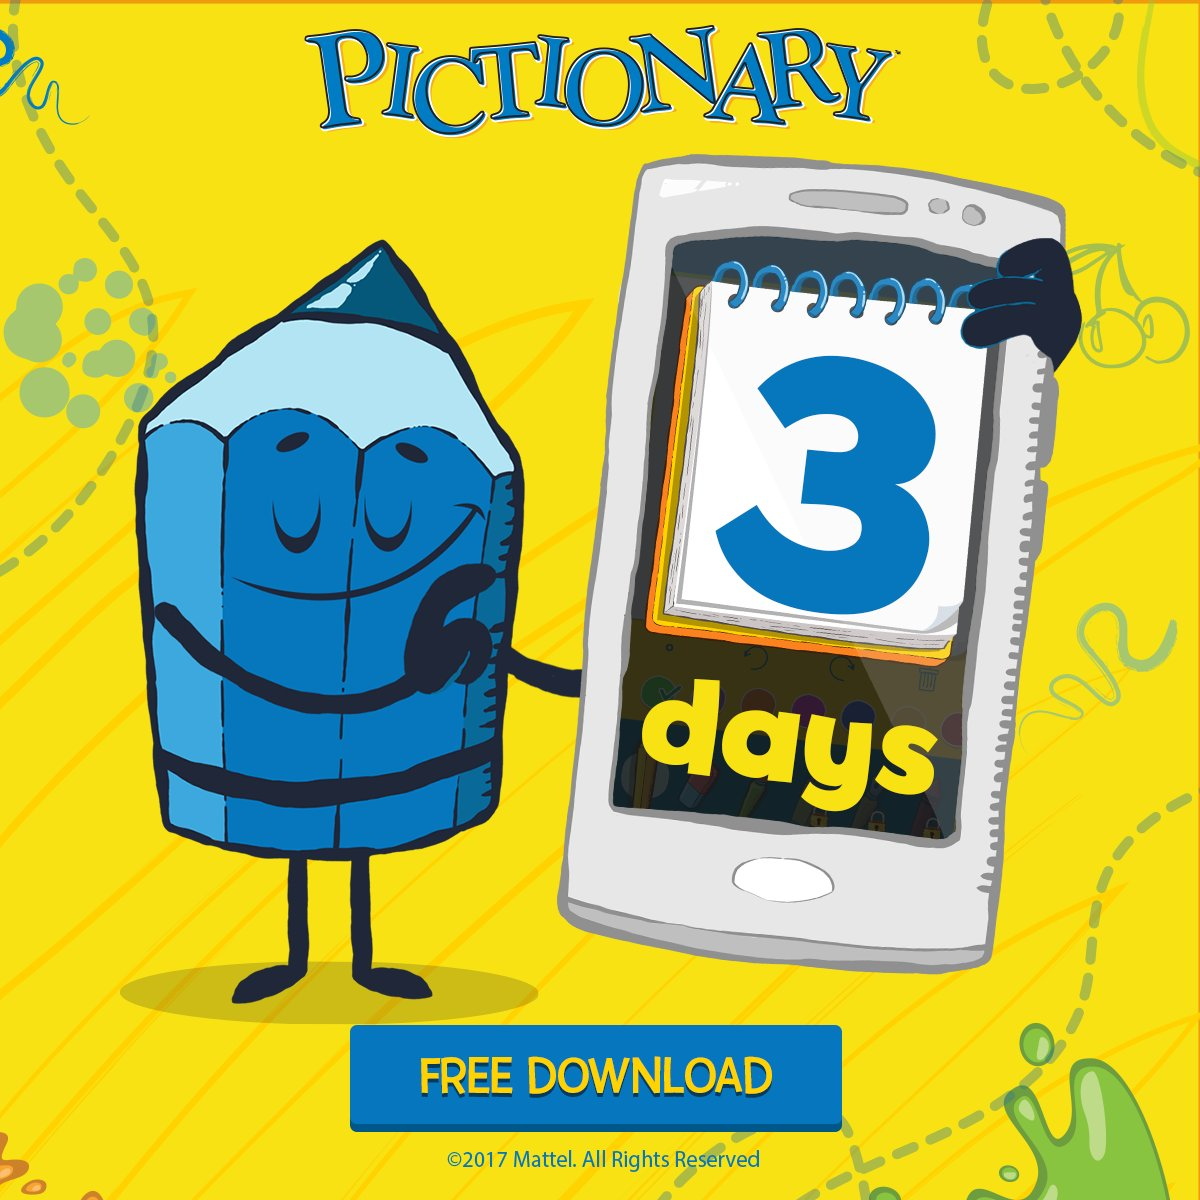 Pictionaryapp on twitter prepare yourself pictionary lovers now 3days pictionary mondaymotivationpicitterphqixrsbqk solutioingenieria Gallery